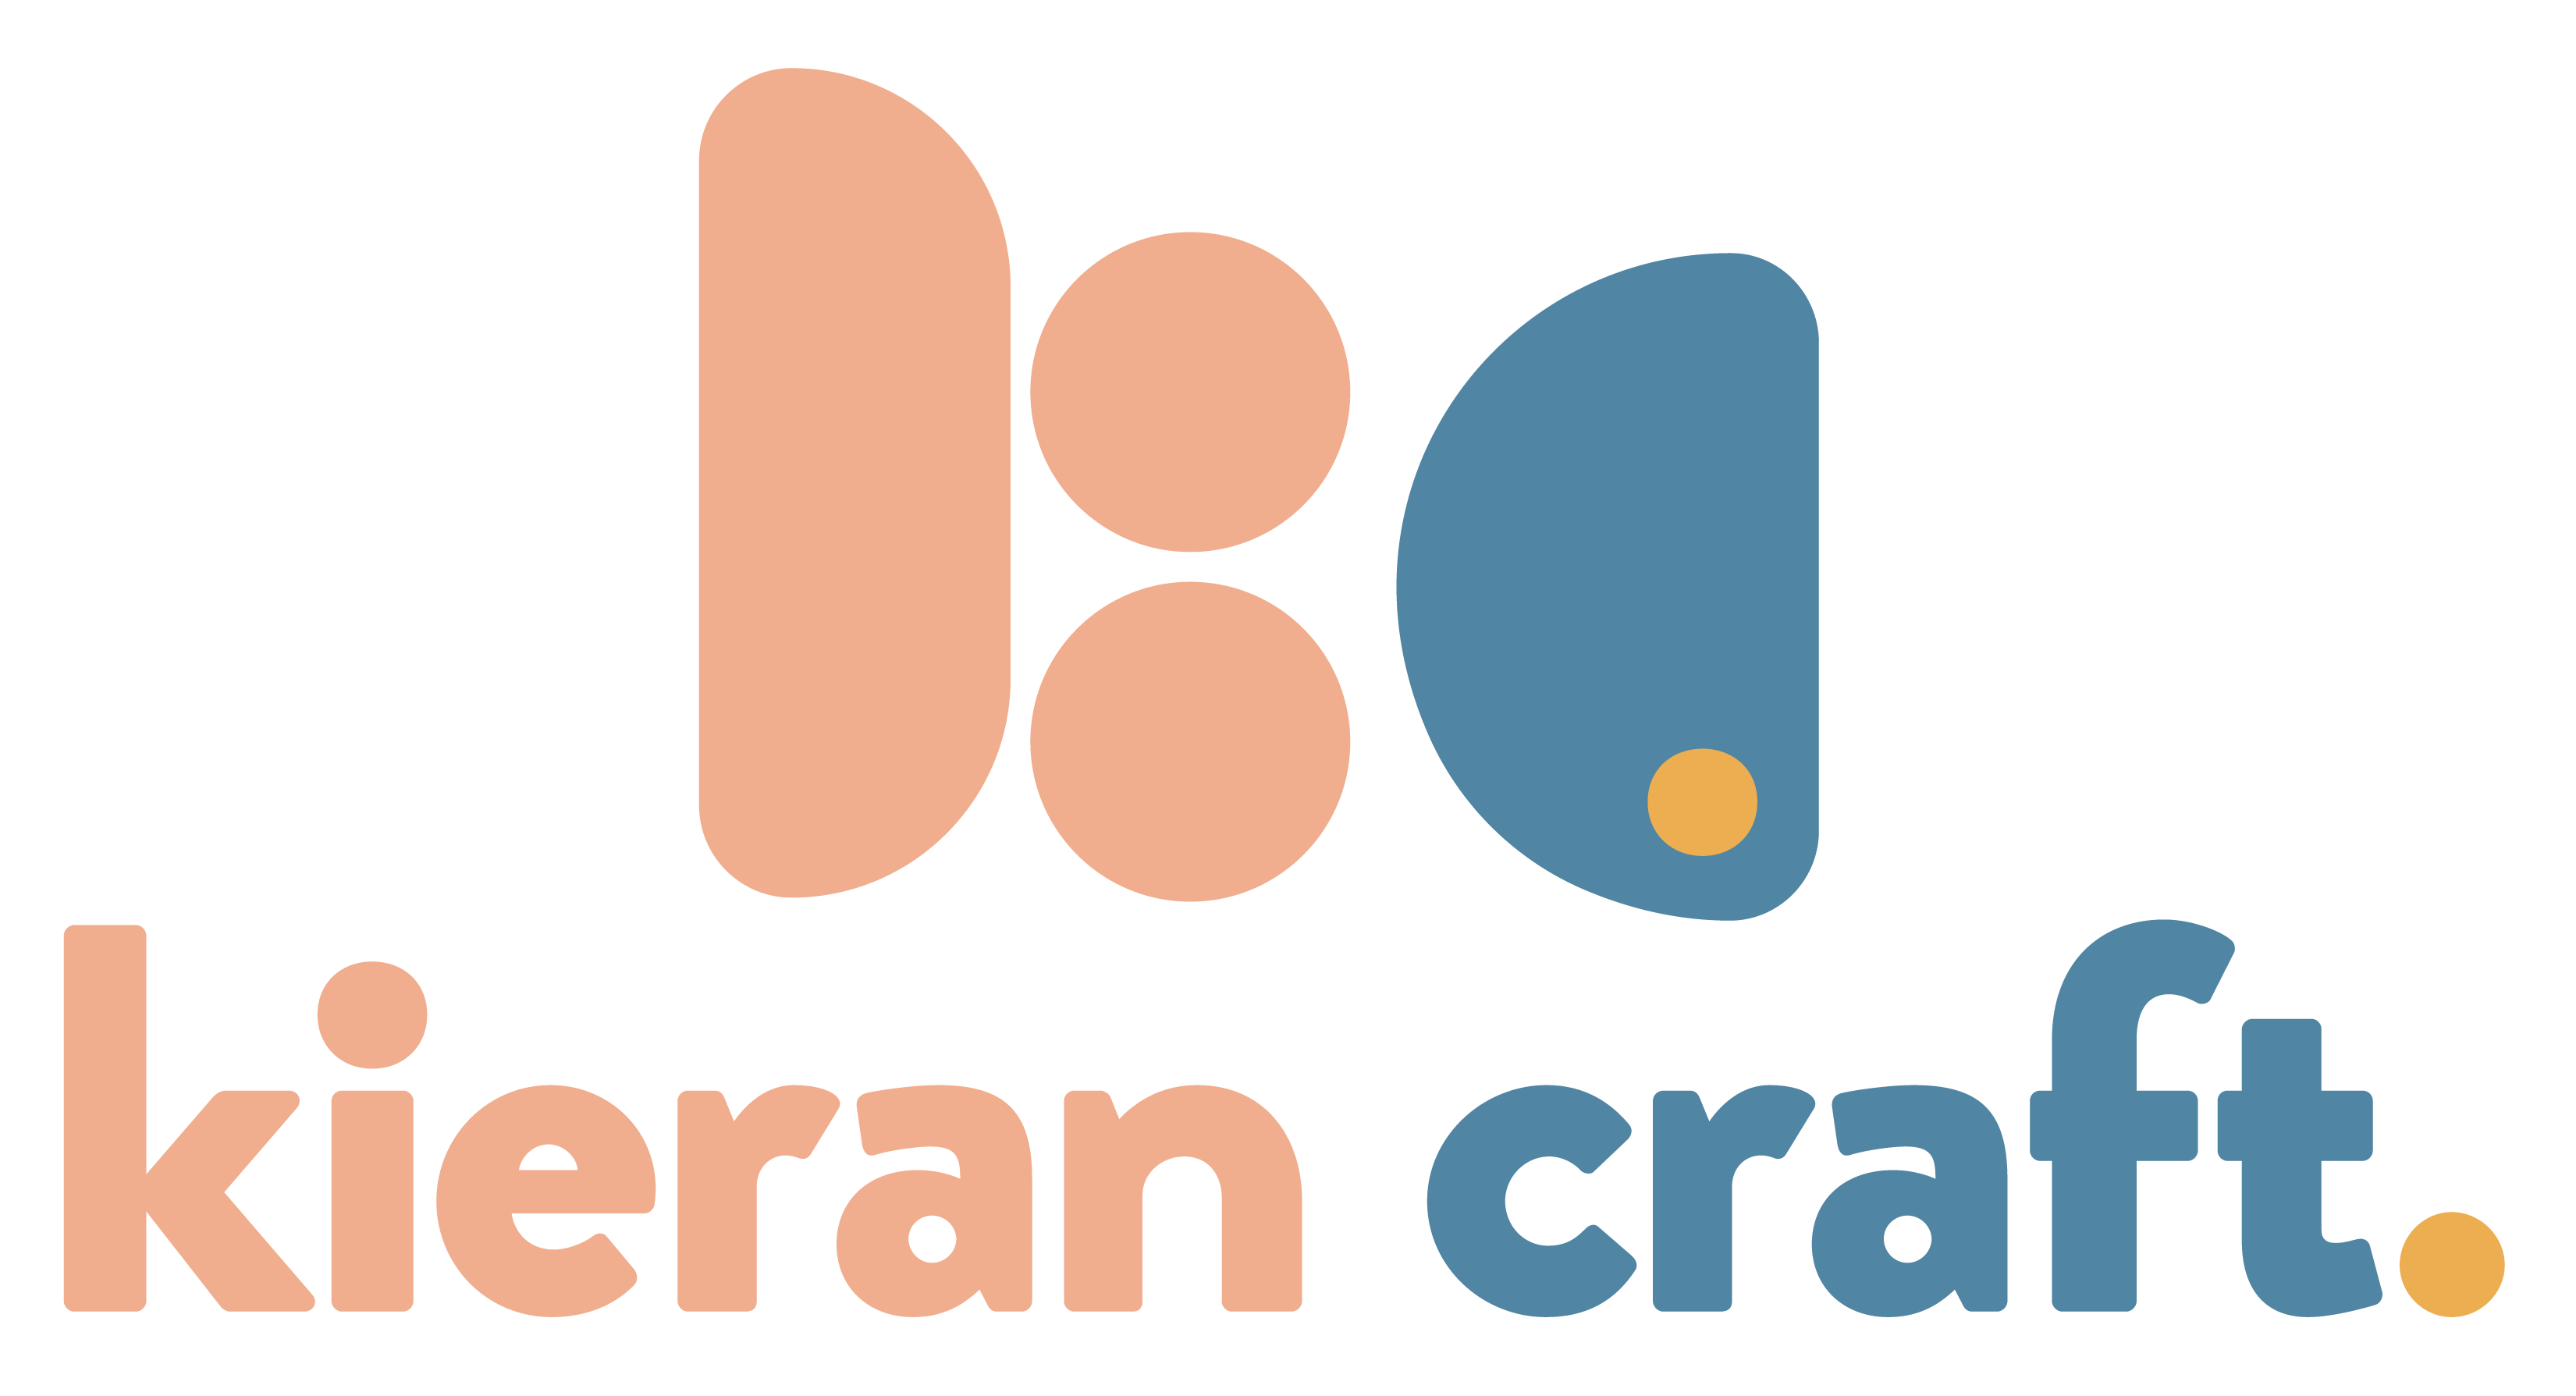 """Logo featuring the name Kieran Craft and a logomark that uses rounded shapes to represent an abstract """"KC."""""""